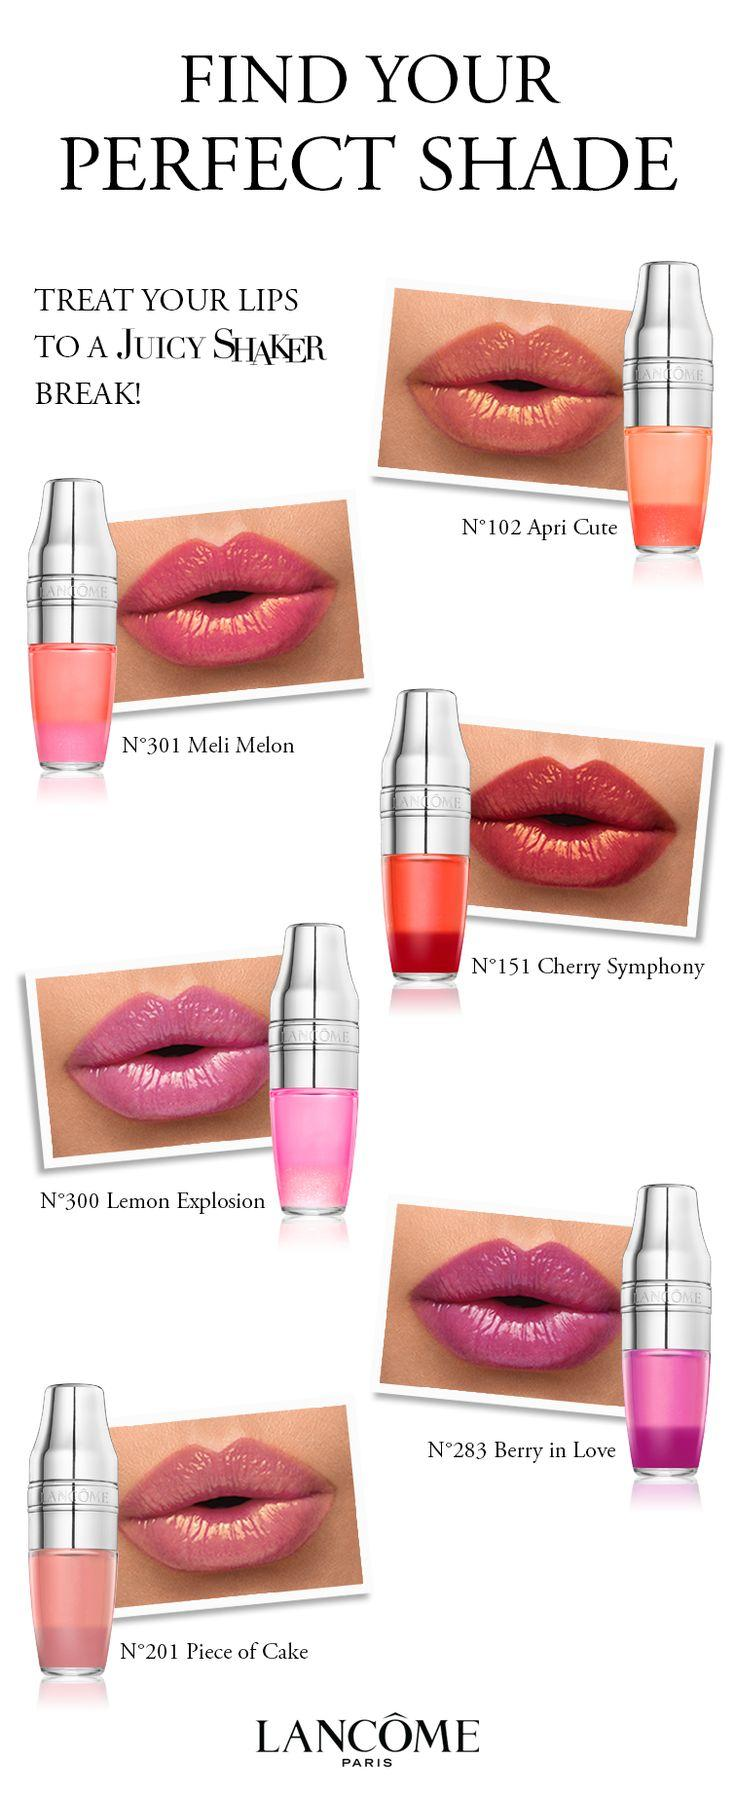 Hochzeit - Juicy Shaker Lip Oil #BANTHEBORING